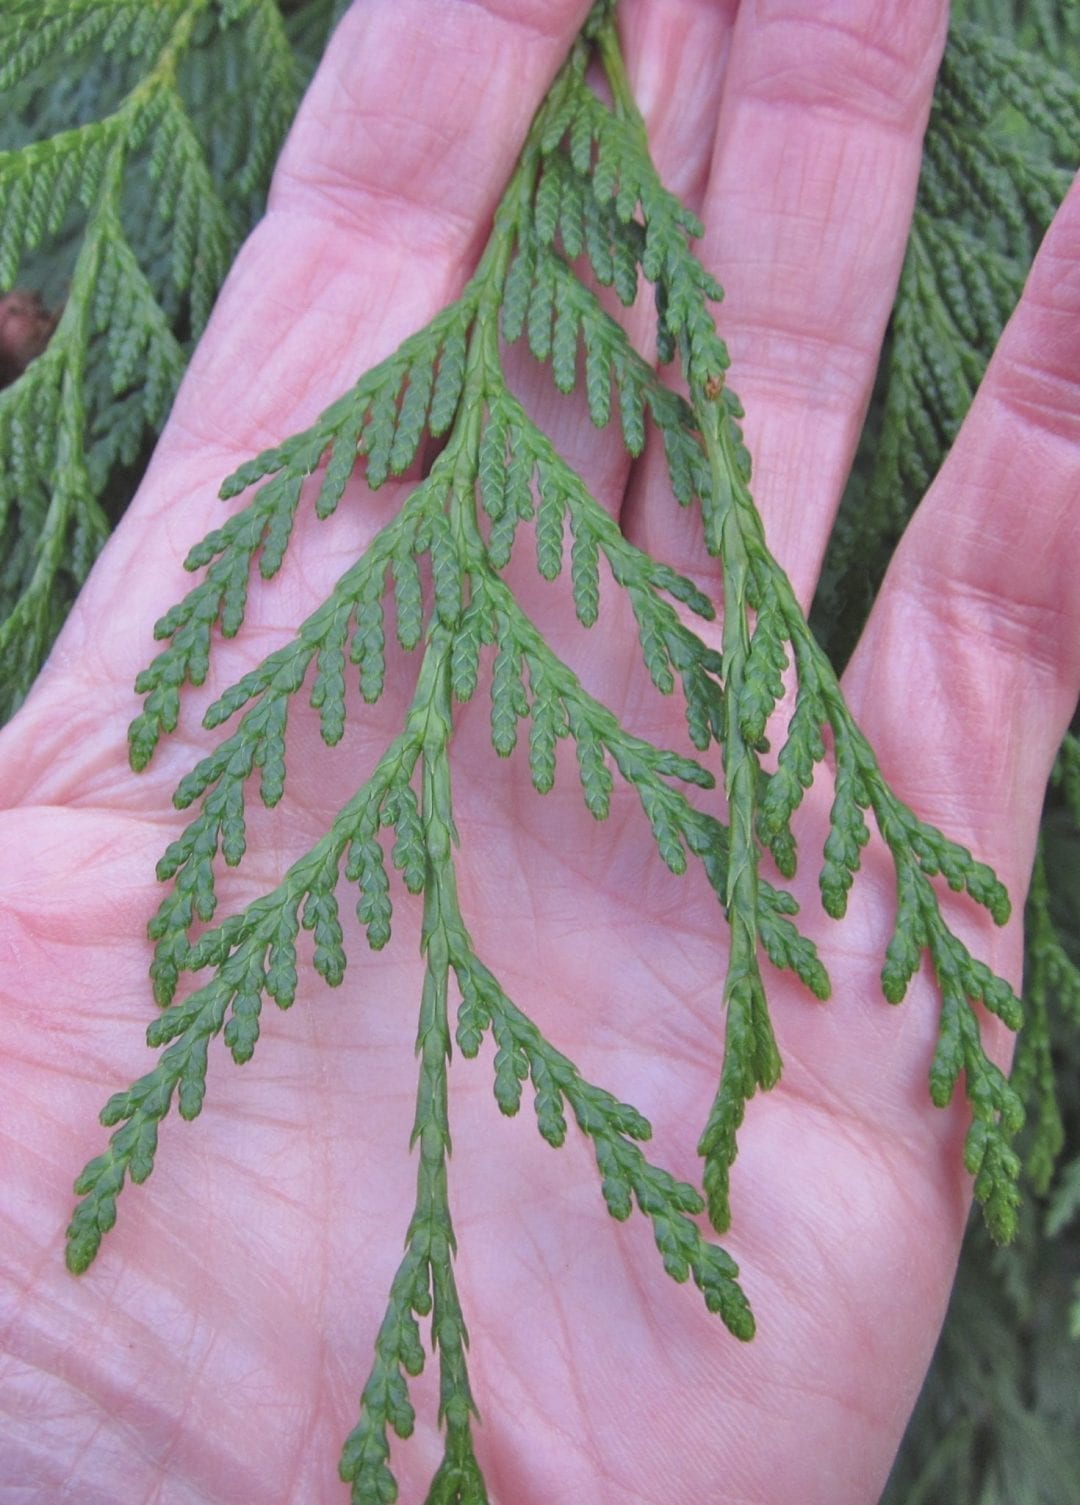 Western Red Cedar scale leaves